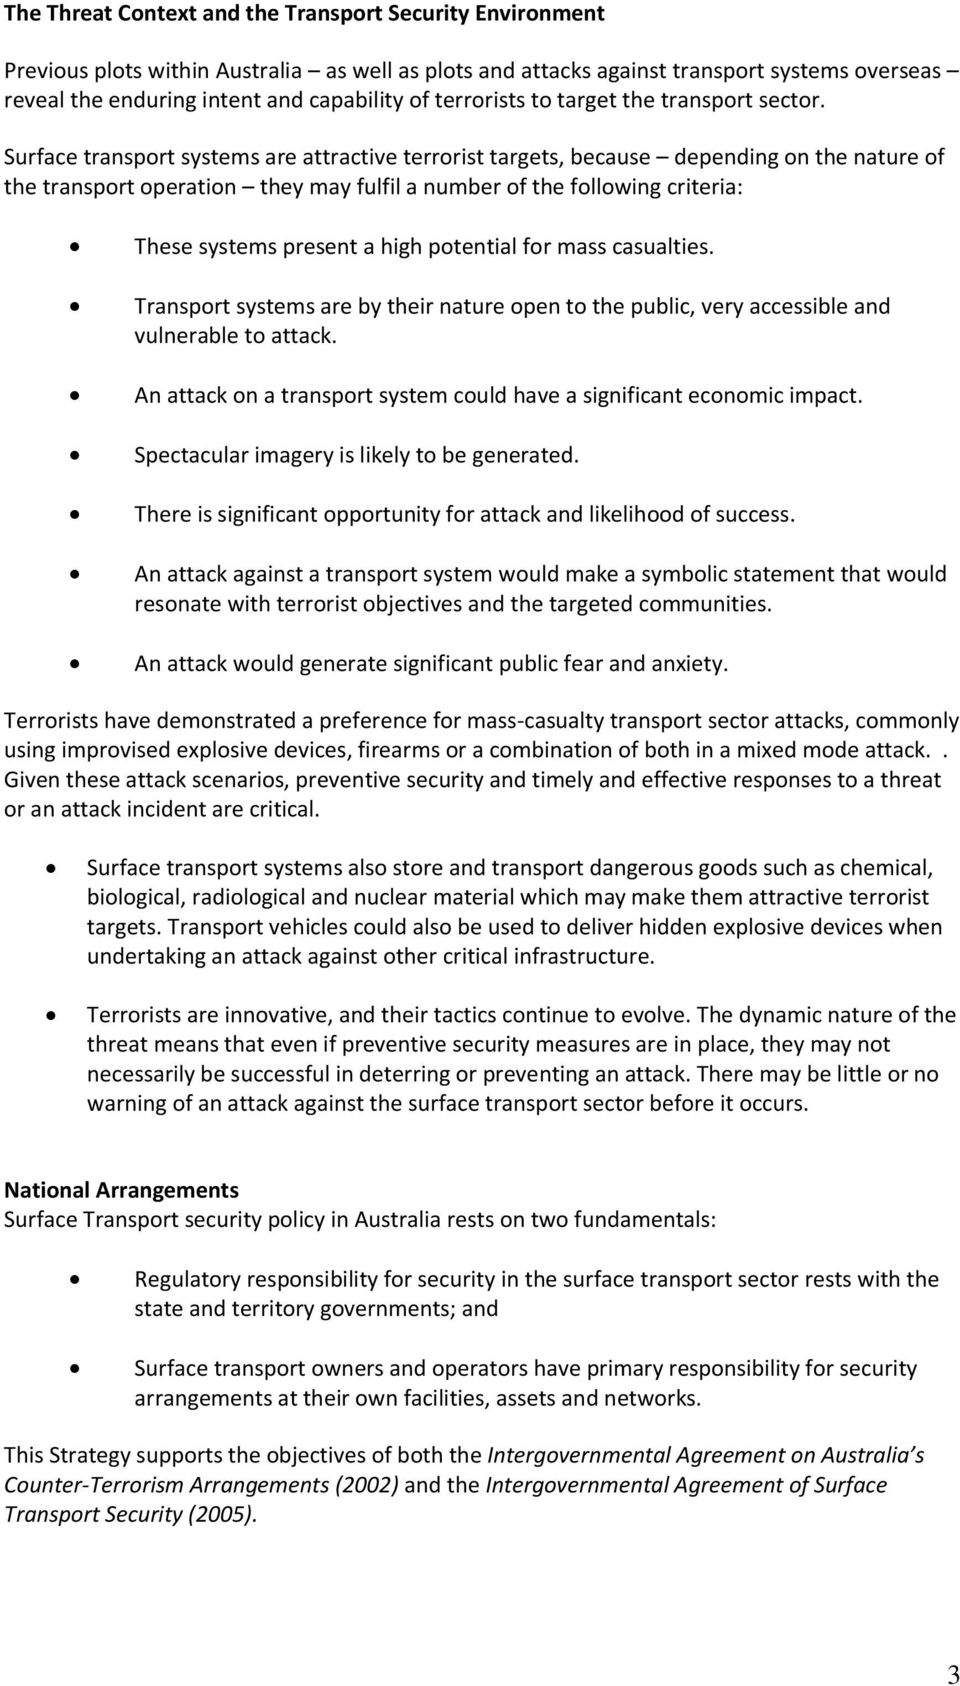 Surface transport systems are attractive terrorist targets, because depending on the nature of the transport operation they may fulfil a number of the following criteria: These systems present a high